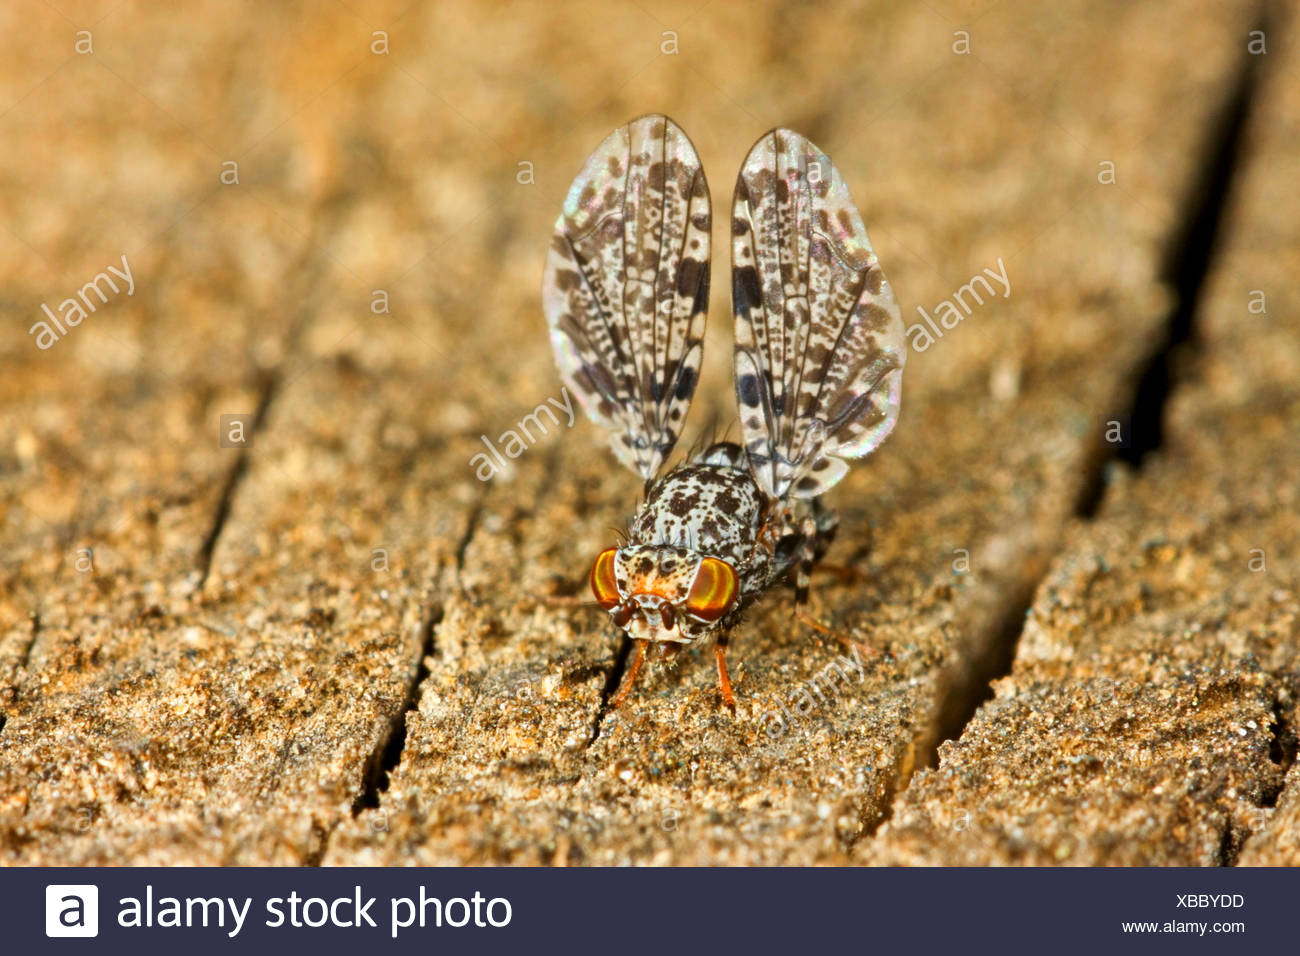 Peacock Fly, Peacock-Fly (Callopistromyia annulipes), male with typical wing movement, Germany - Stock Image